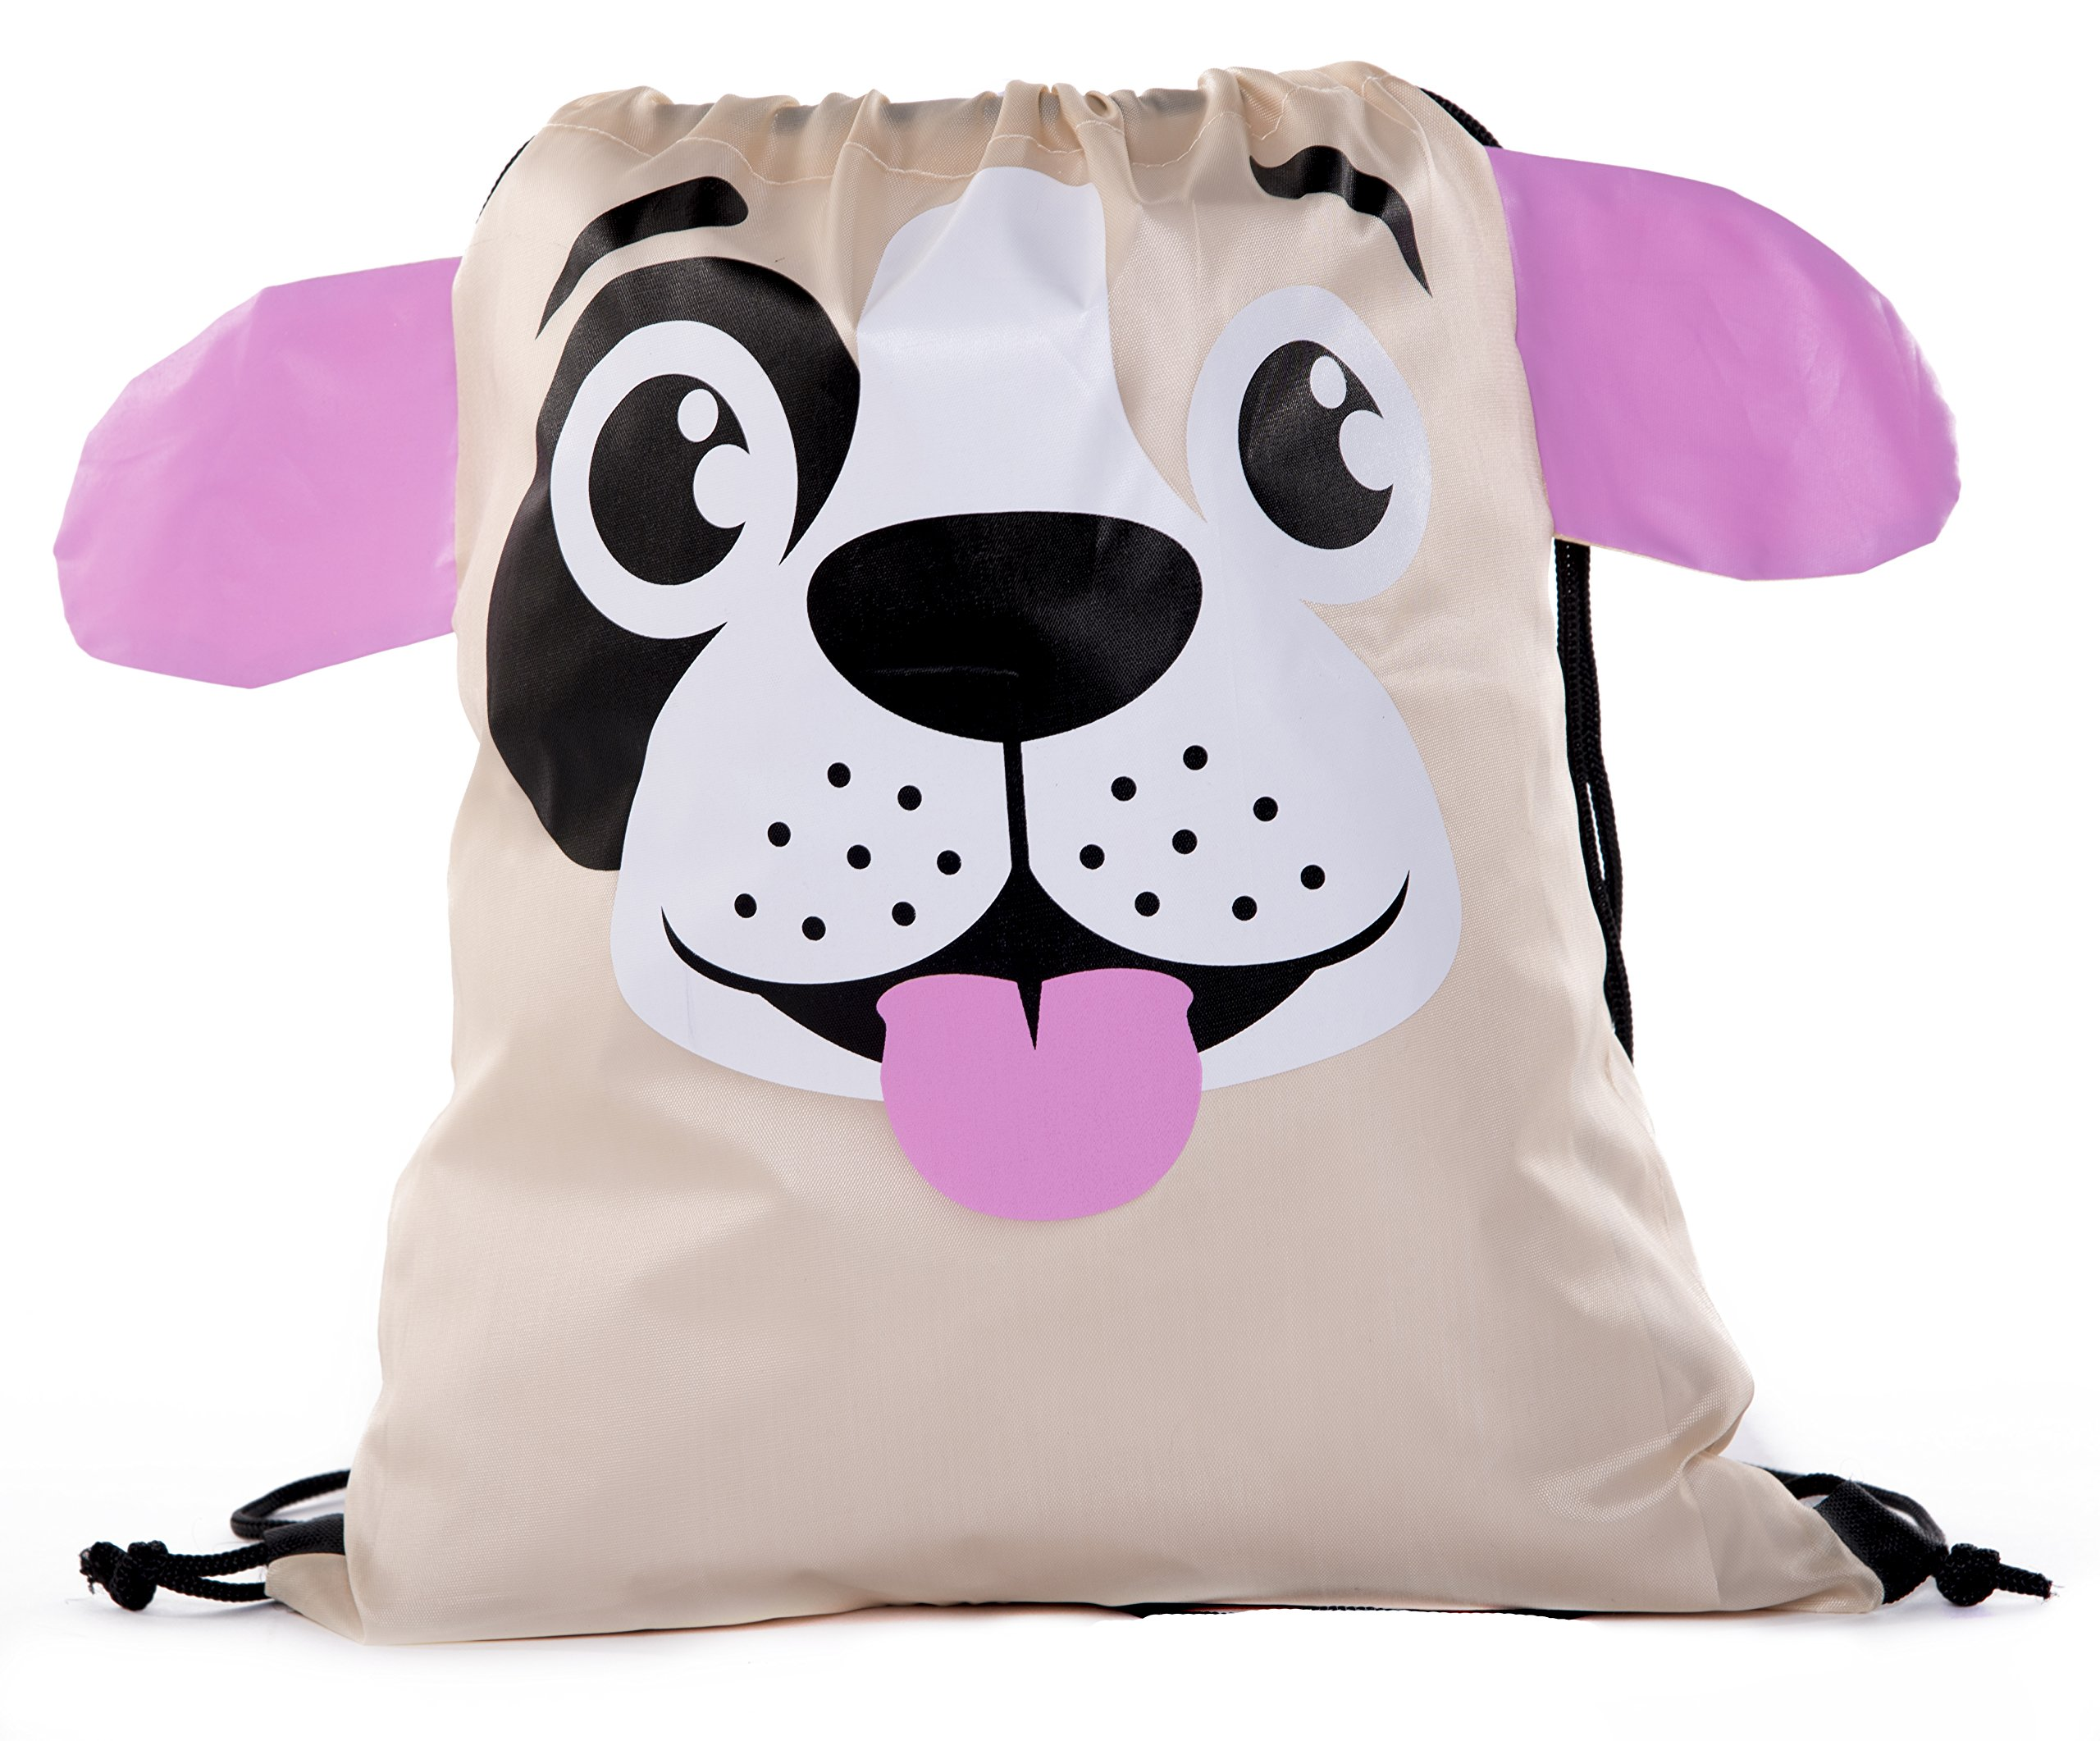 Party Favor Bags for Kids   Animal Drawstring Backpacks, Goodie Bags for Birthday Parties and More By Mato & Hash